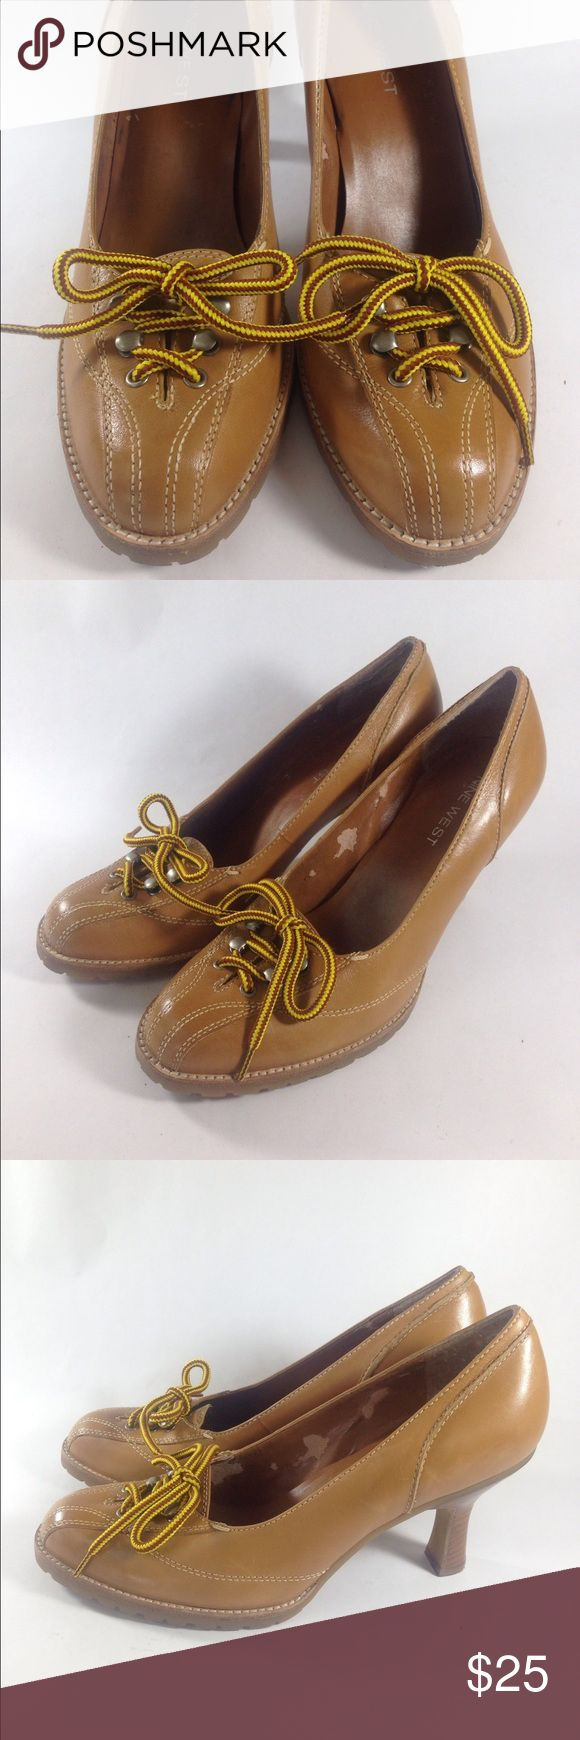 Nine West Brown Leather Pumps Size 8.5 Up for sale is this fun pair of Nine West Round Toe Timberland Style Brown Leather Heels. Super chic lace up details.  Women's Size 8.5   CONDITION: Good Condition! Interior shows wear. Nine West Shoes Heels